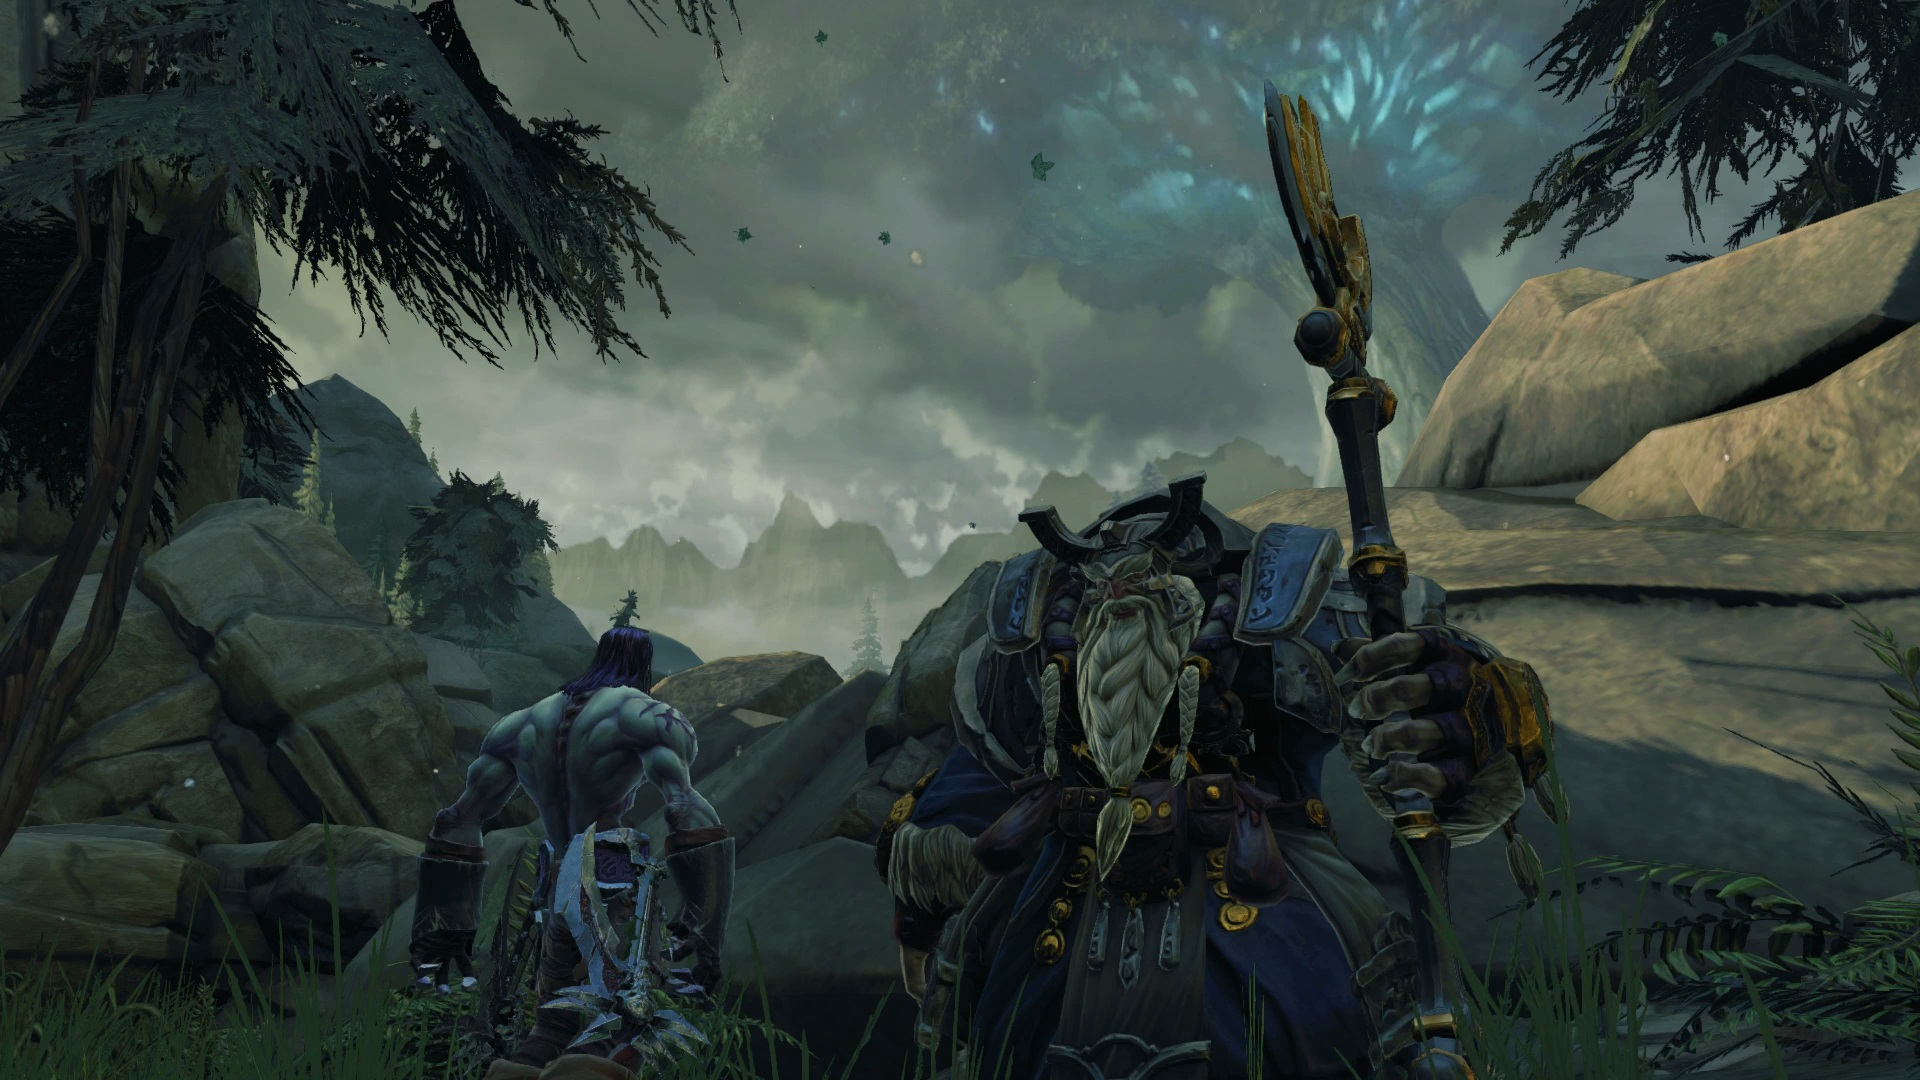 darksiders II deathinitive edition review 2